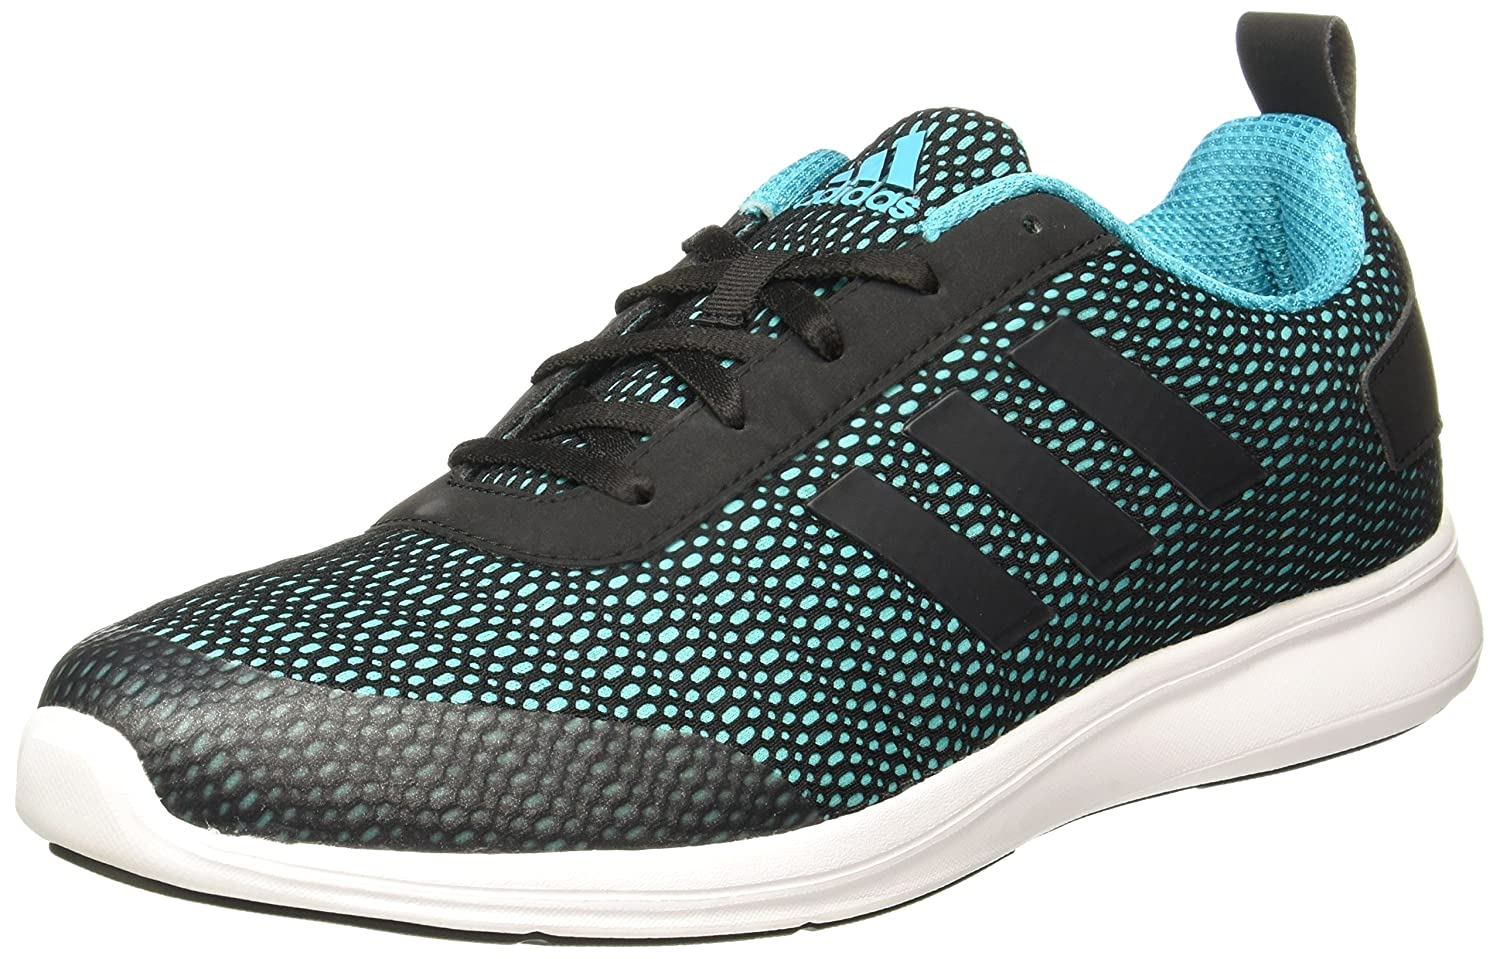 quality design 2a51b 3da6e Adidas Mens Adispree 2.0 M Running Shoes Buy Online at Low Prices in  India - Amazon.in